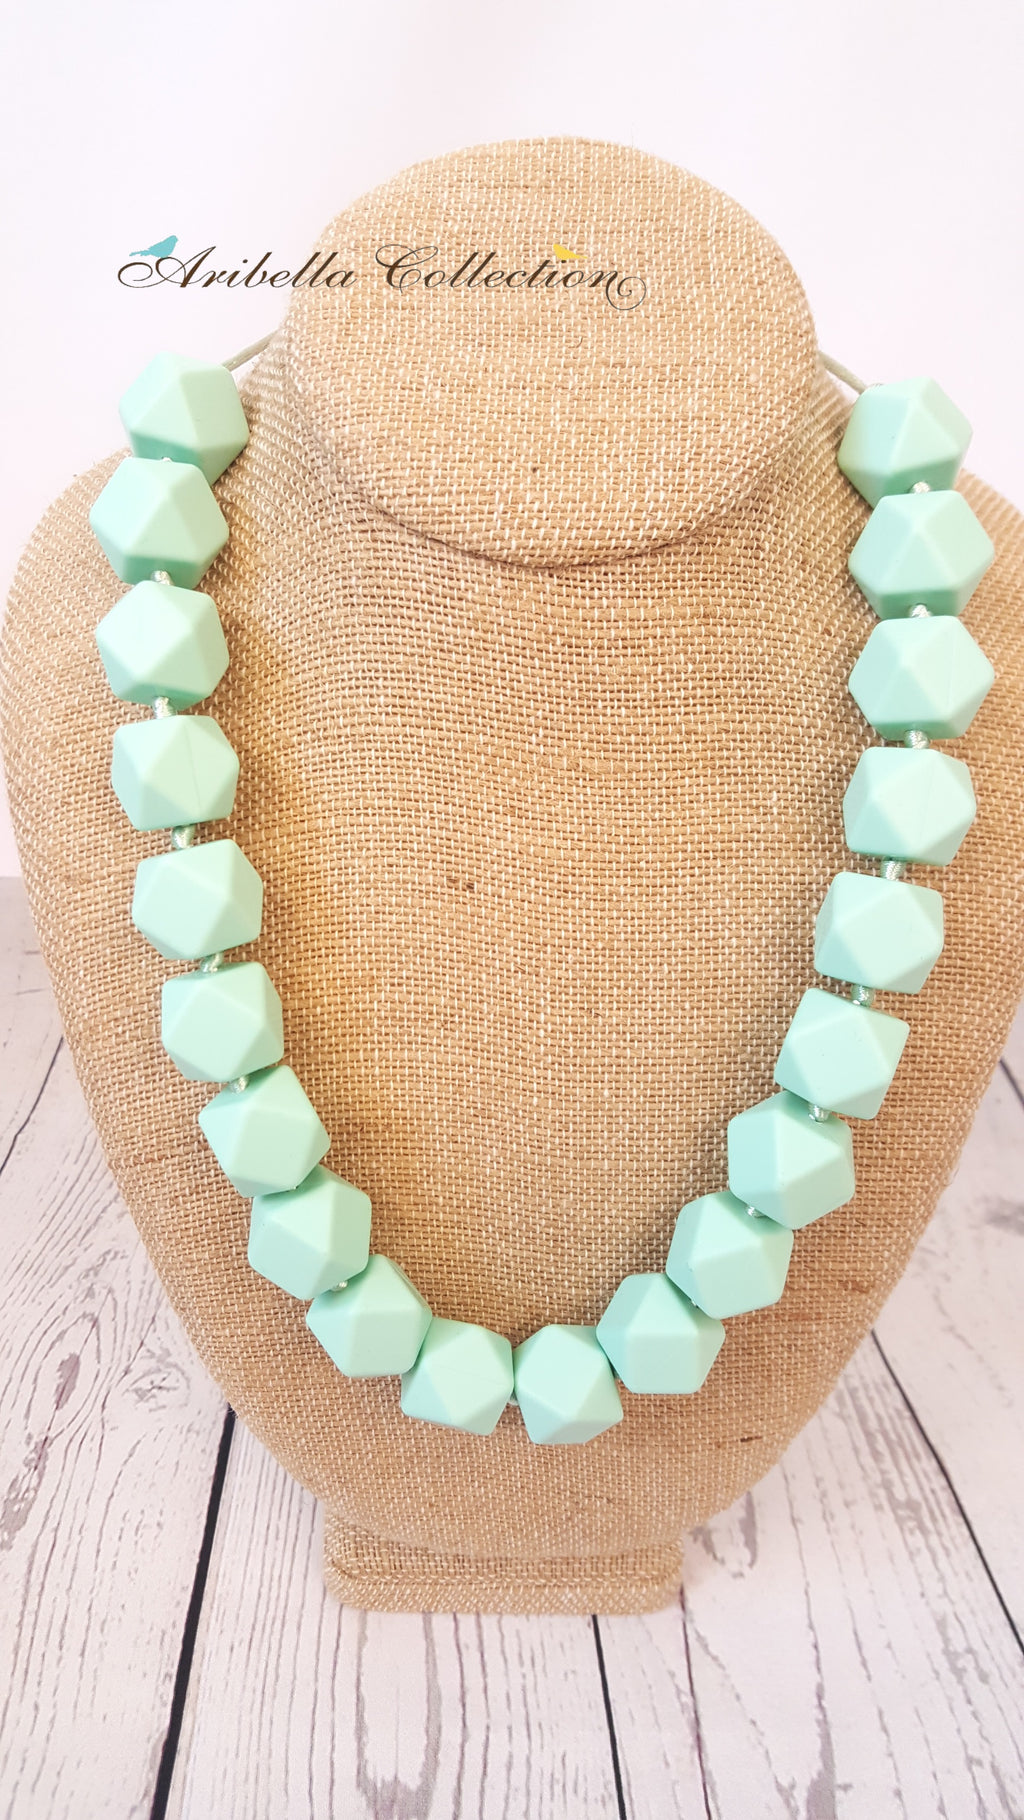 Silicone Necklace - Mint - Aribella Collection